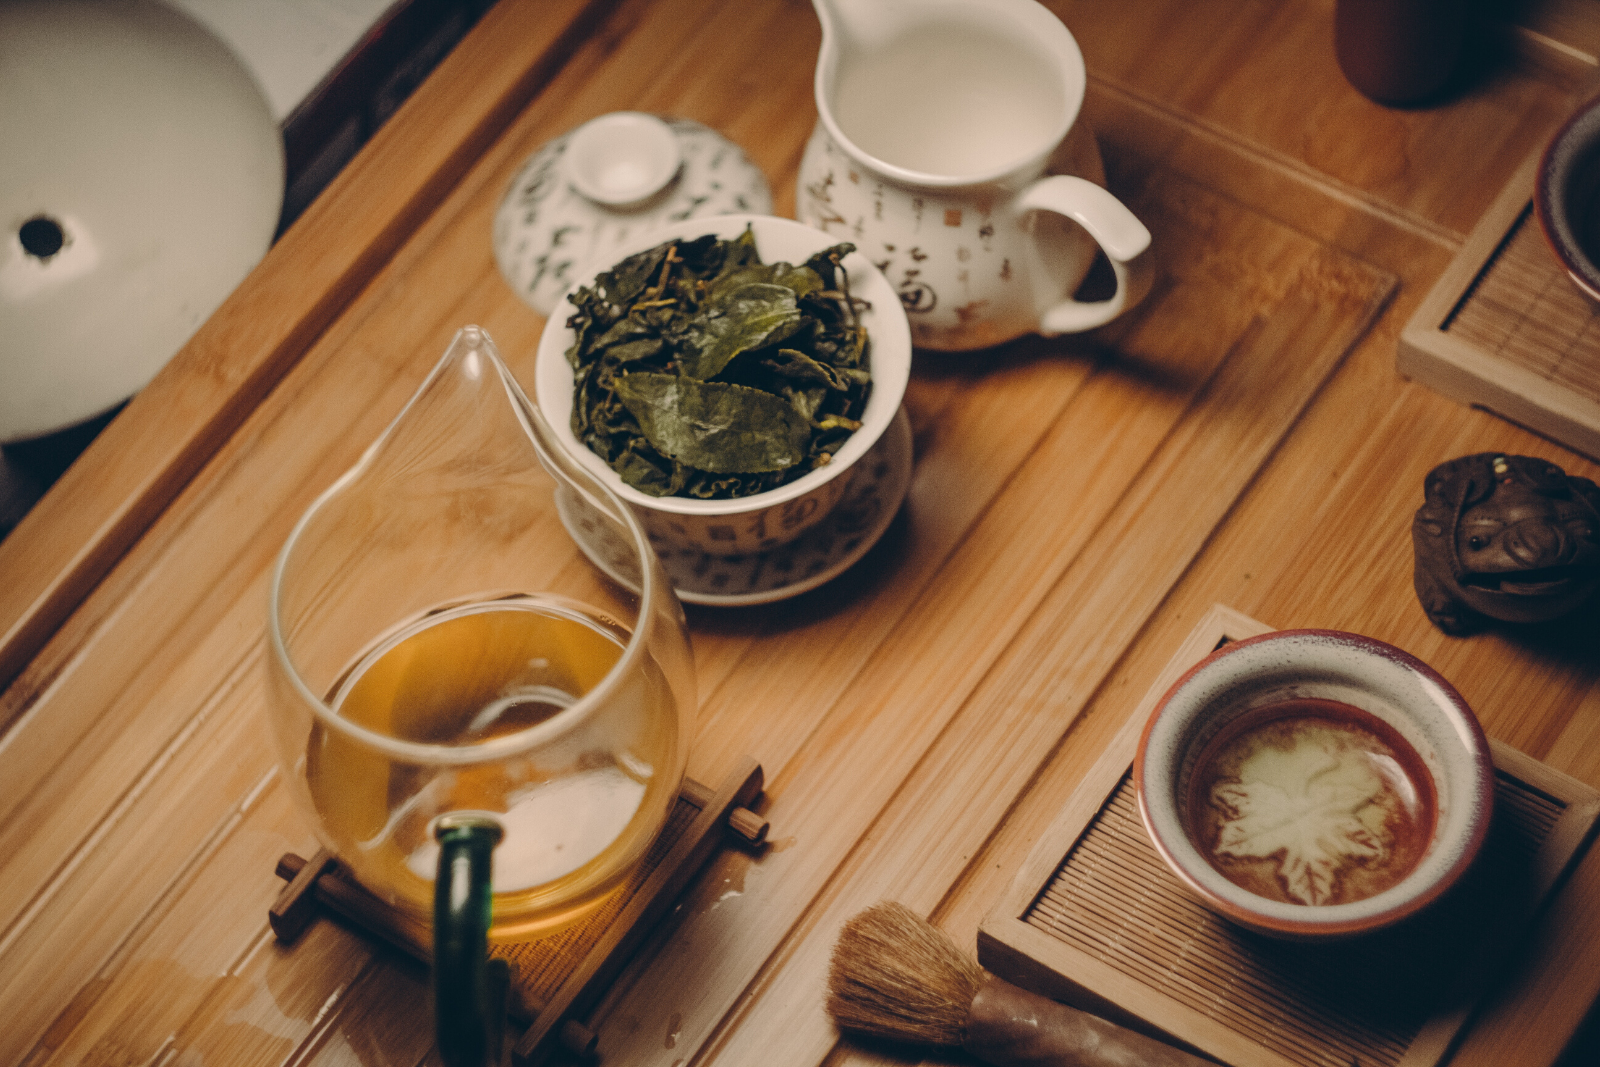 Tea Leaves | 10 Best Detox Tea Brands (And Why People Love Them!)